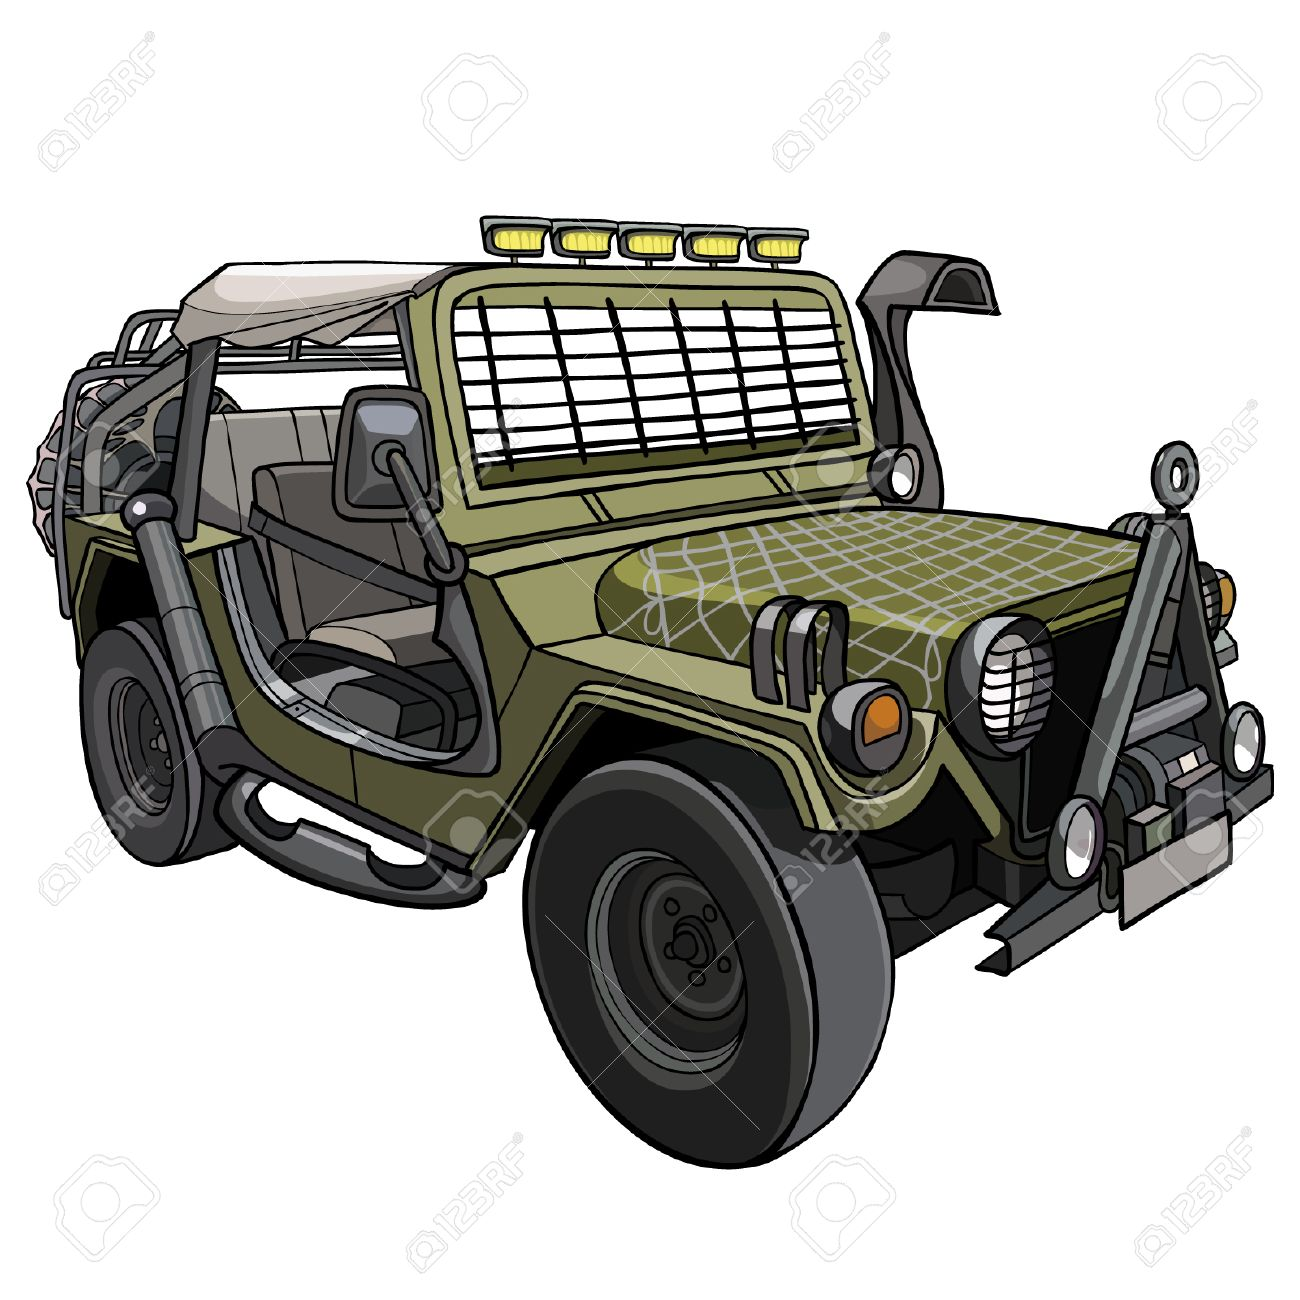 Cartoon Car Military SUV With Awning And Canopies Stock Vector